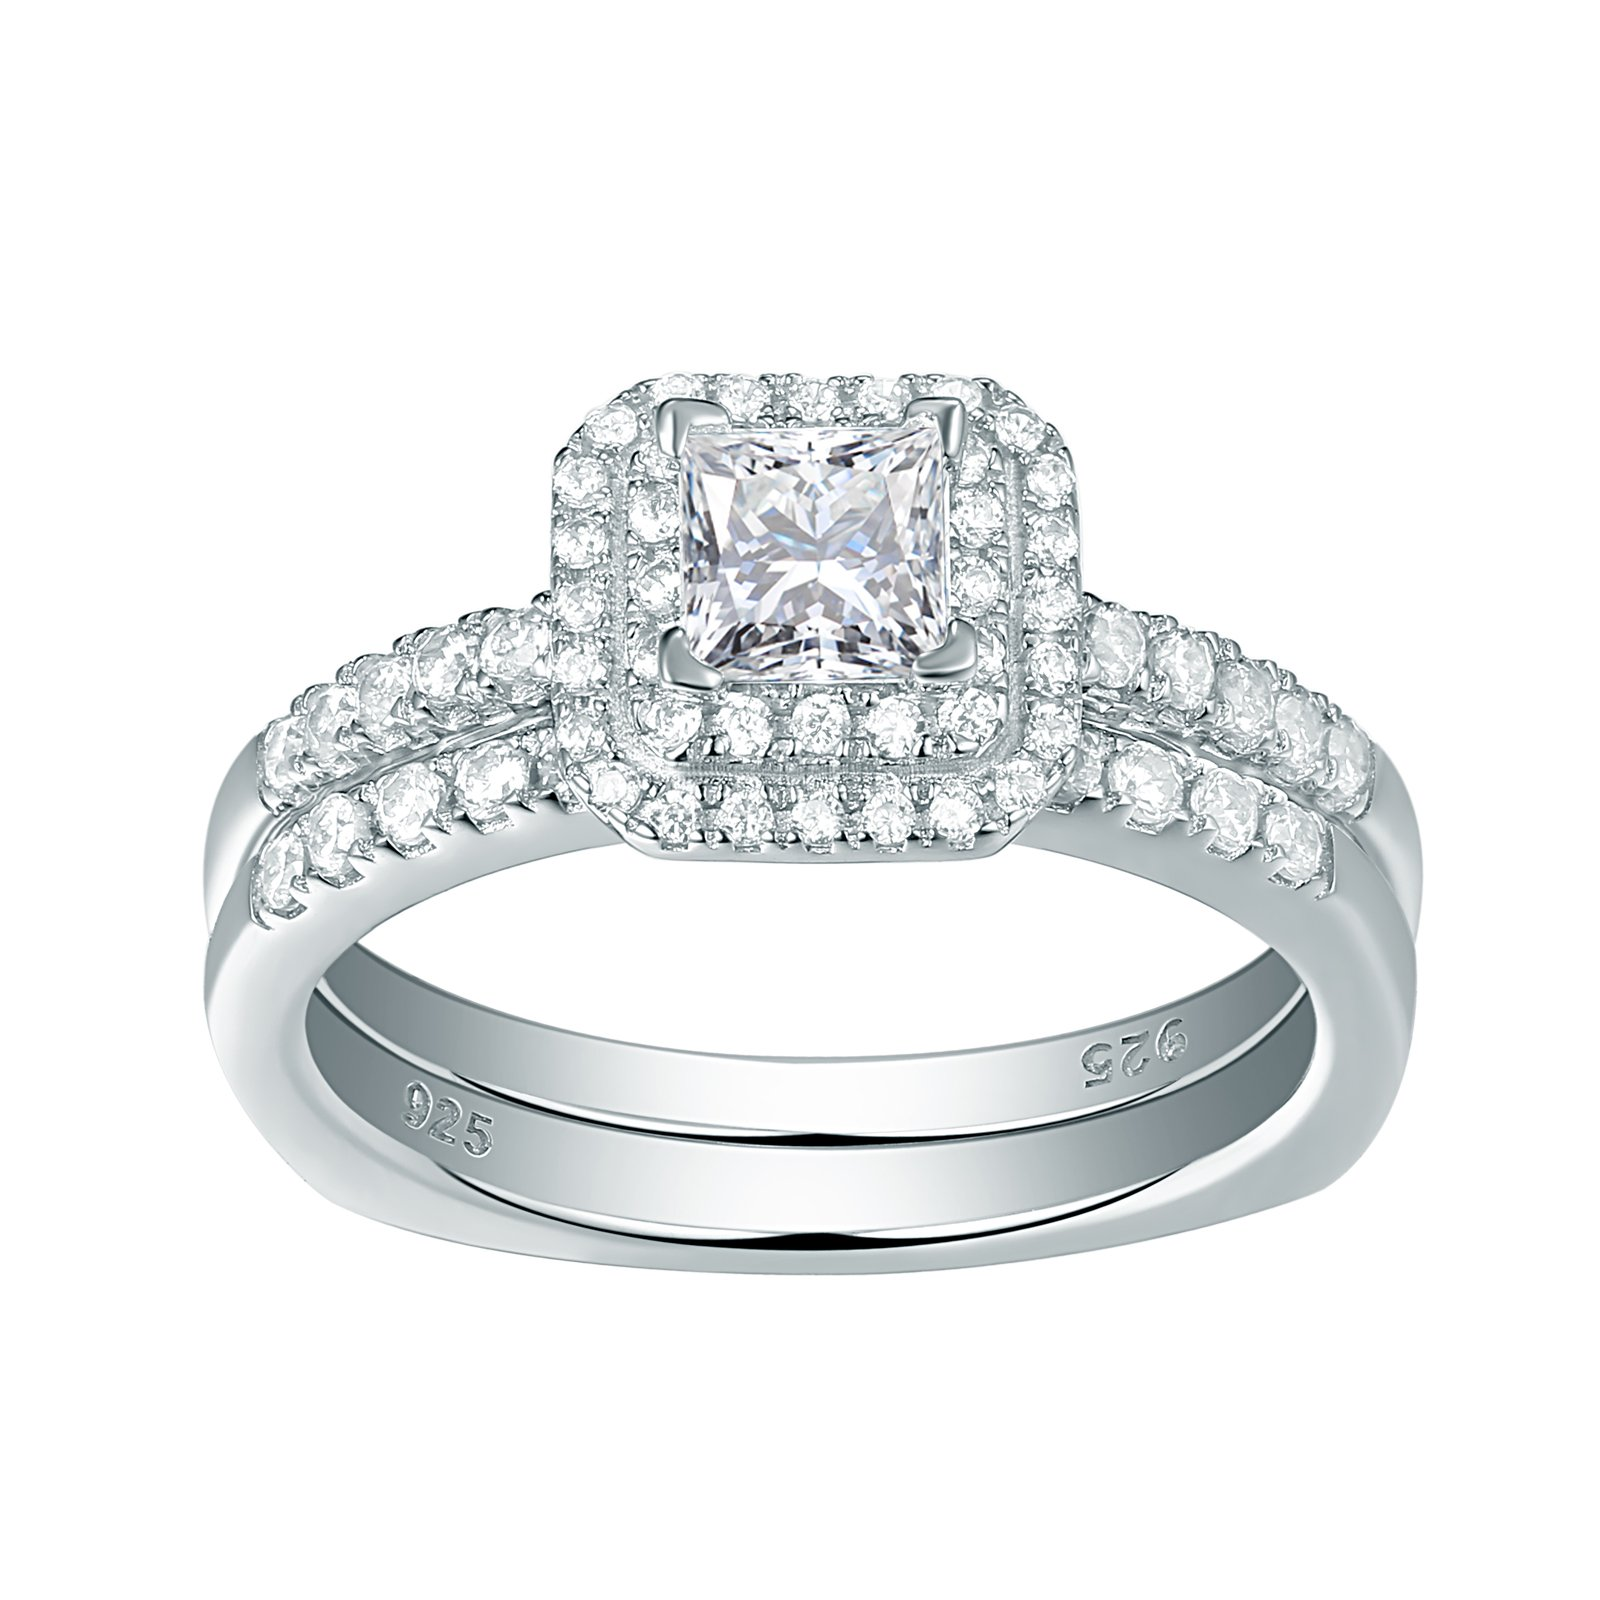 Newshe Jewellery Cz Wedding Rings for Women Engagement Bridal Set Sterling Silver 1.1ct Princess Size 5